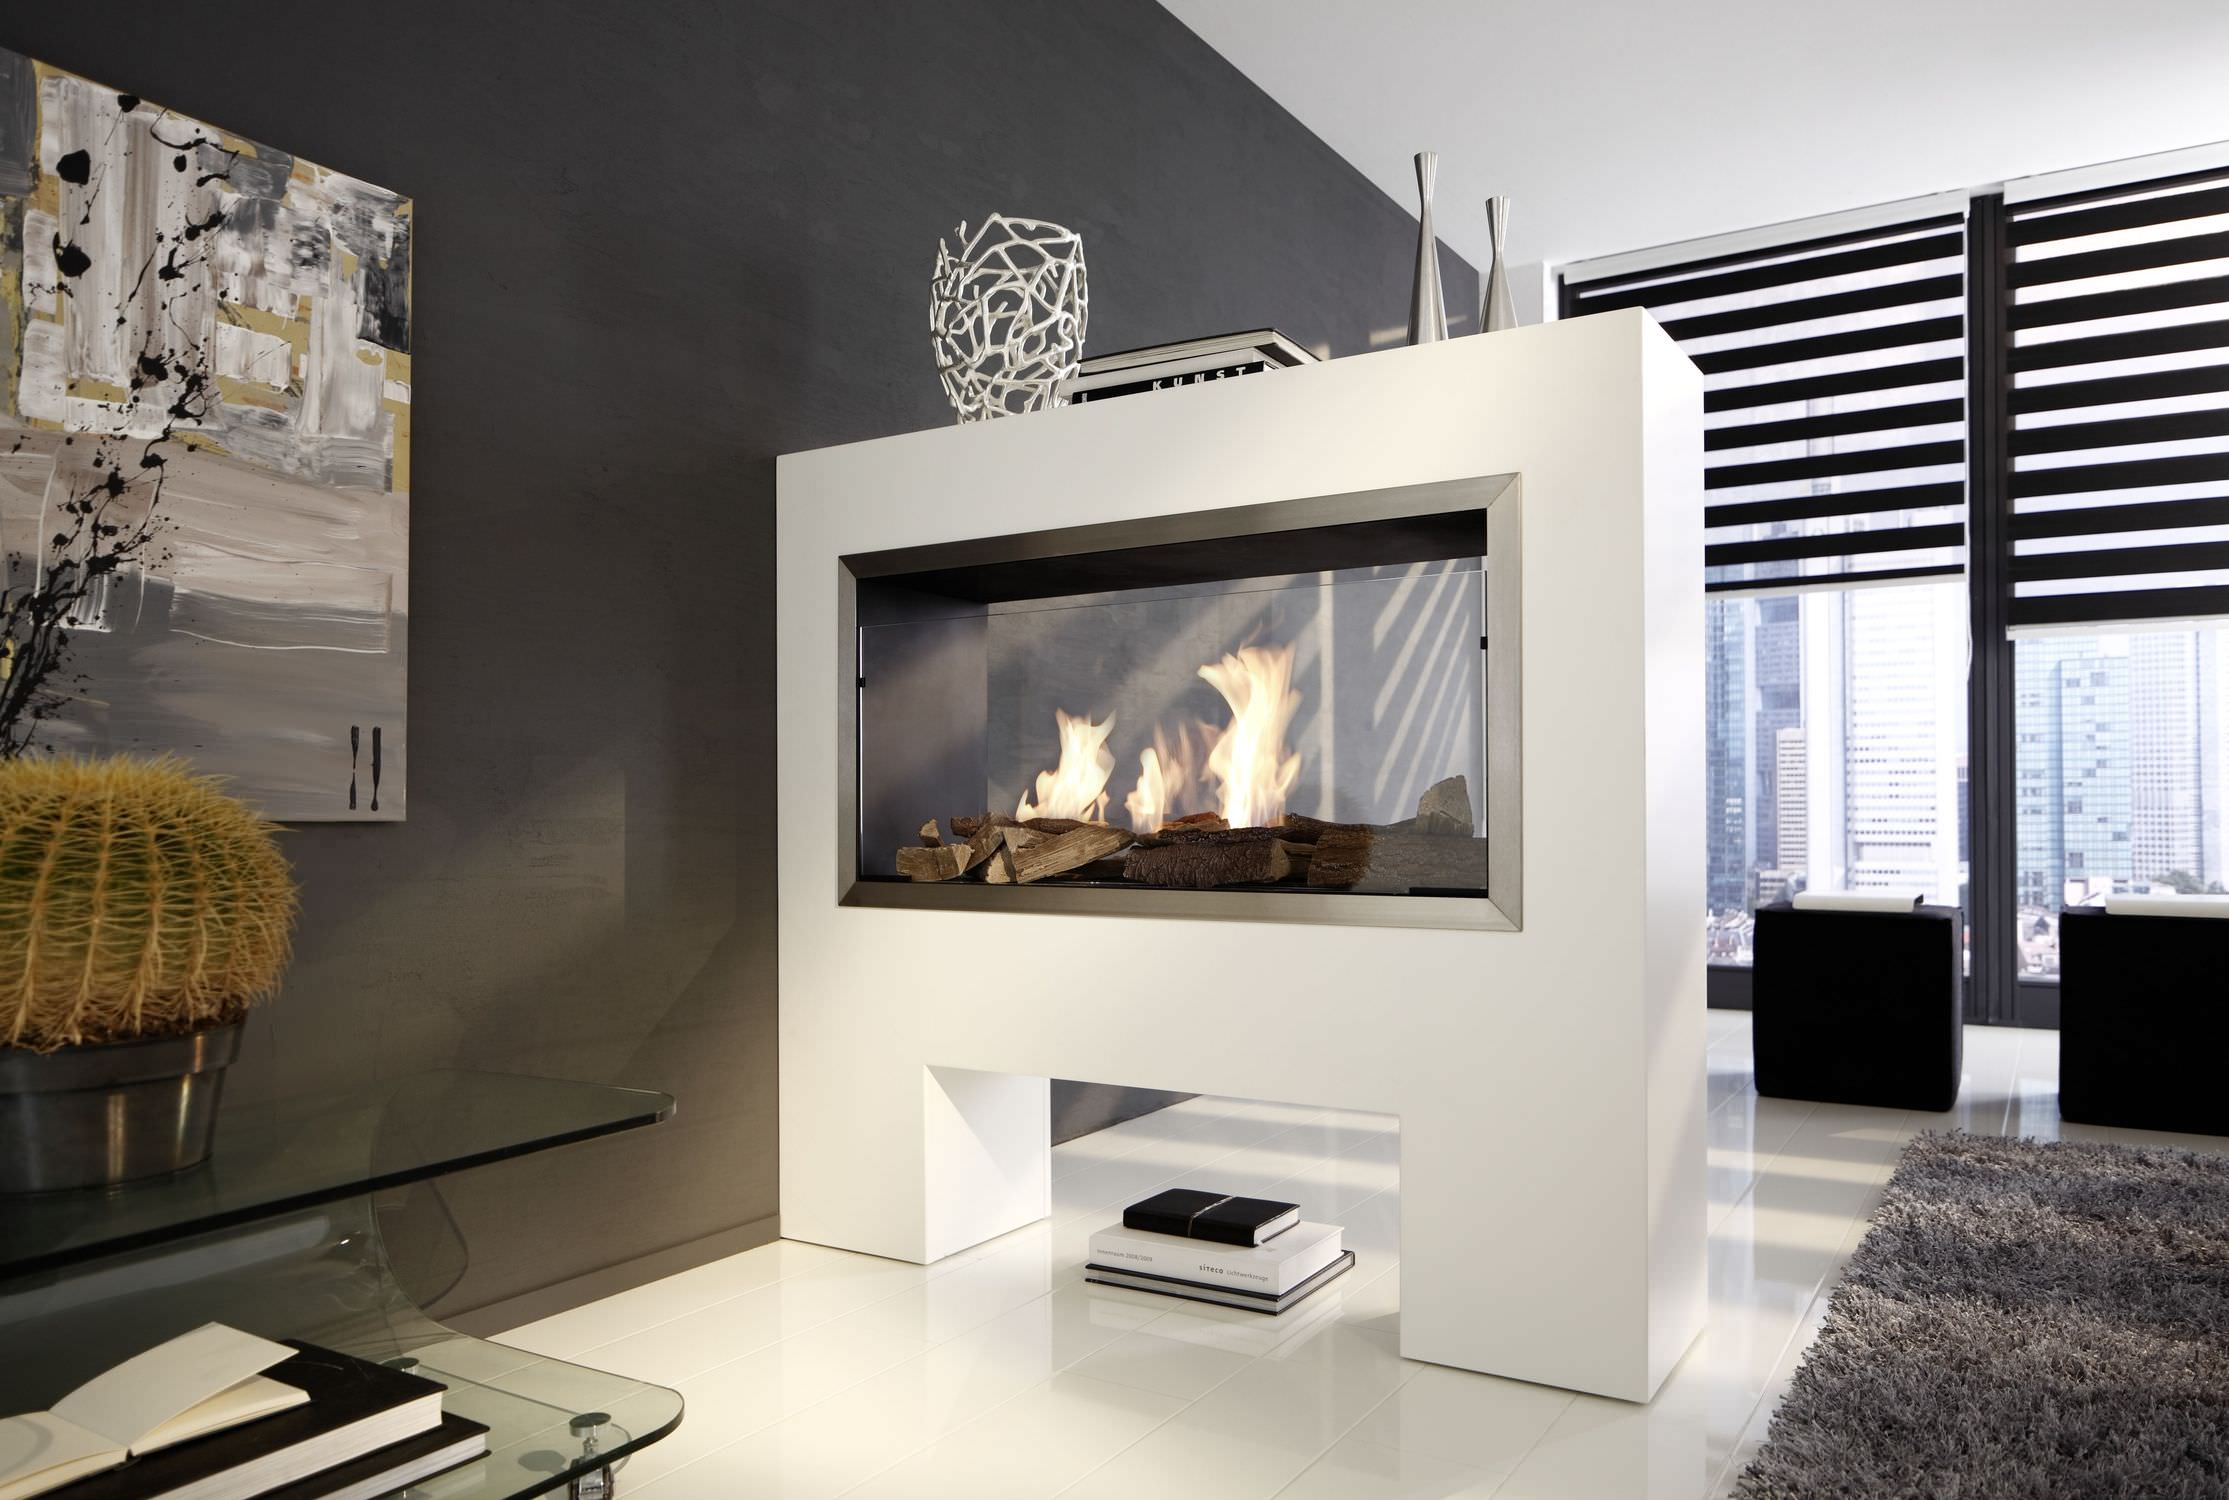 2 sided electric fireplace insert fireplace design ideas - Electric Fireplace Design Ideas